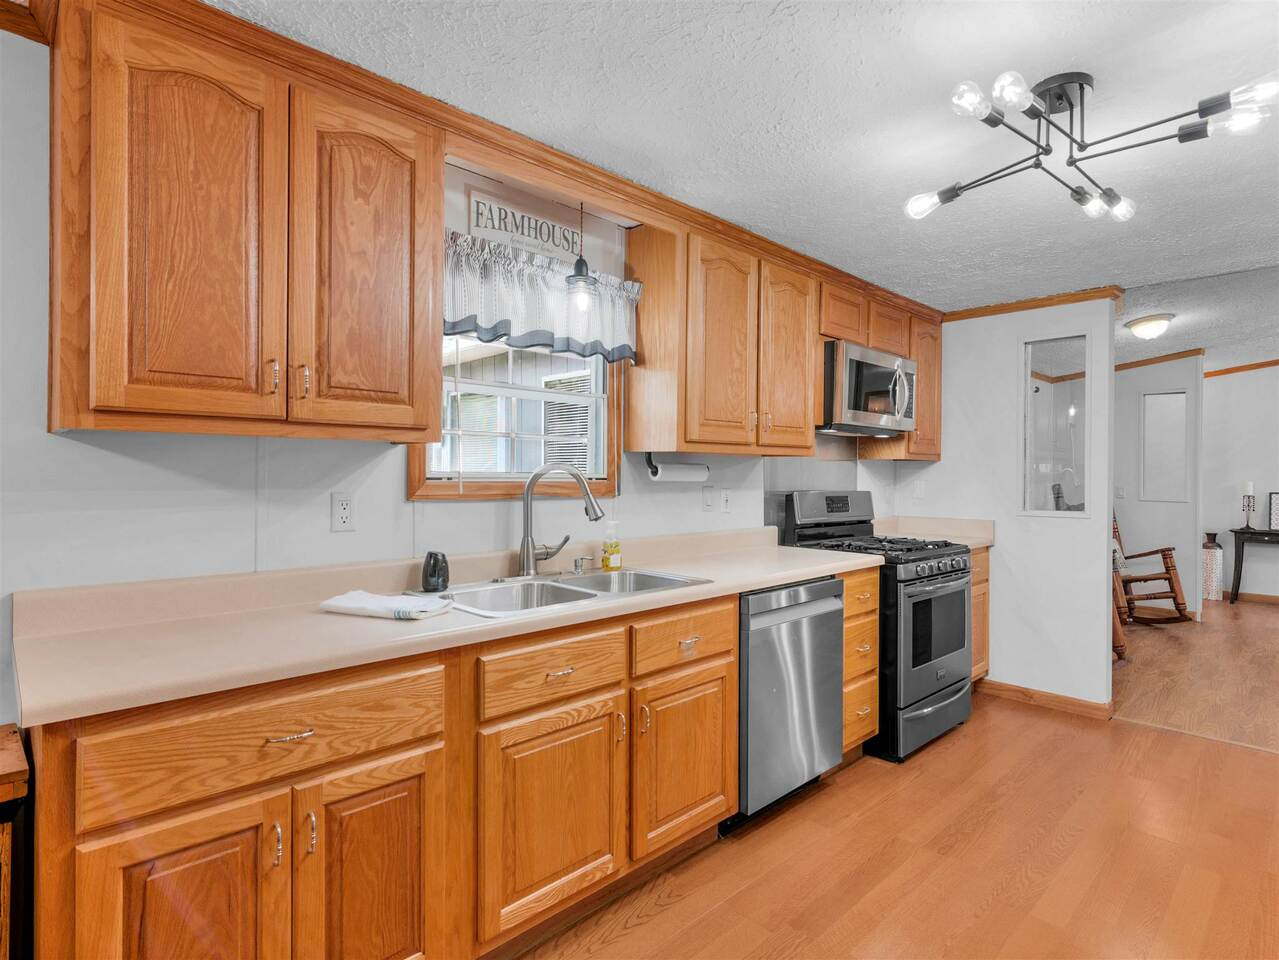 258 Country Kitchen Road Property Photo 5